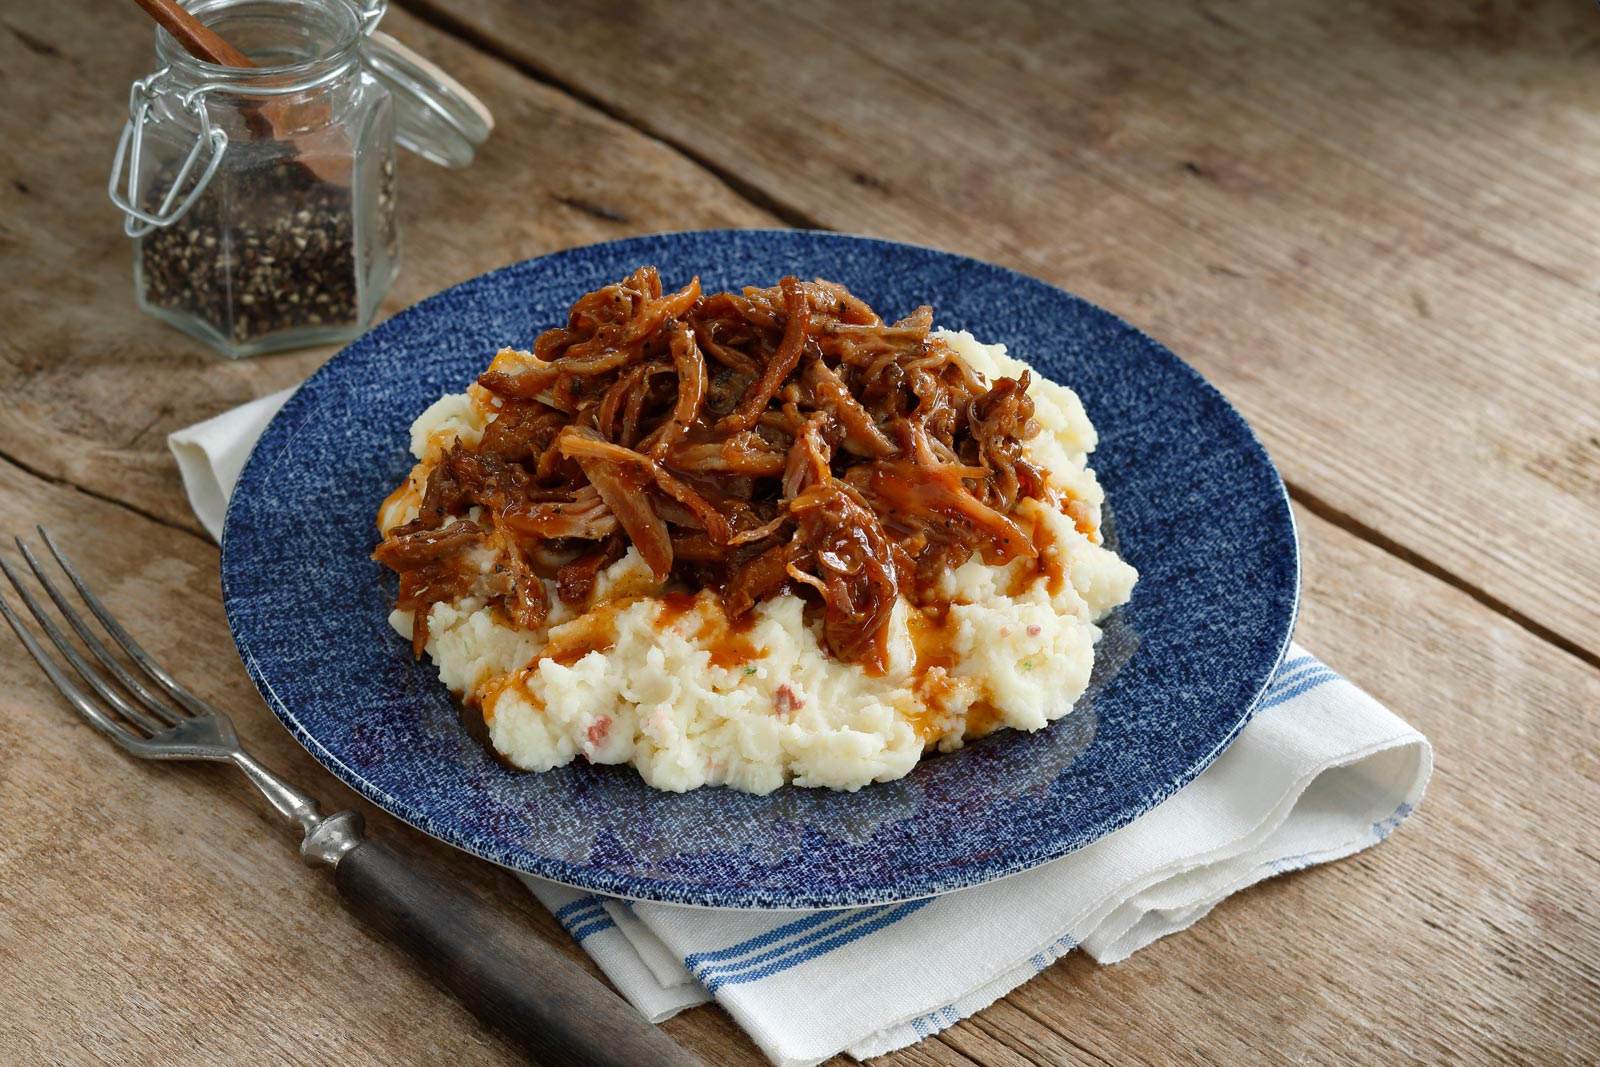 Mashed Potatoes with Pulled Pork